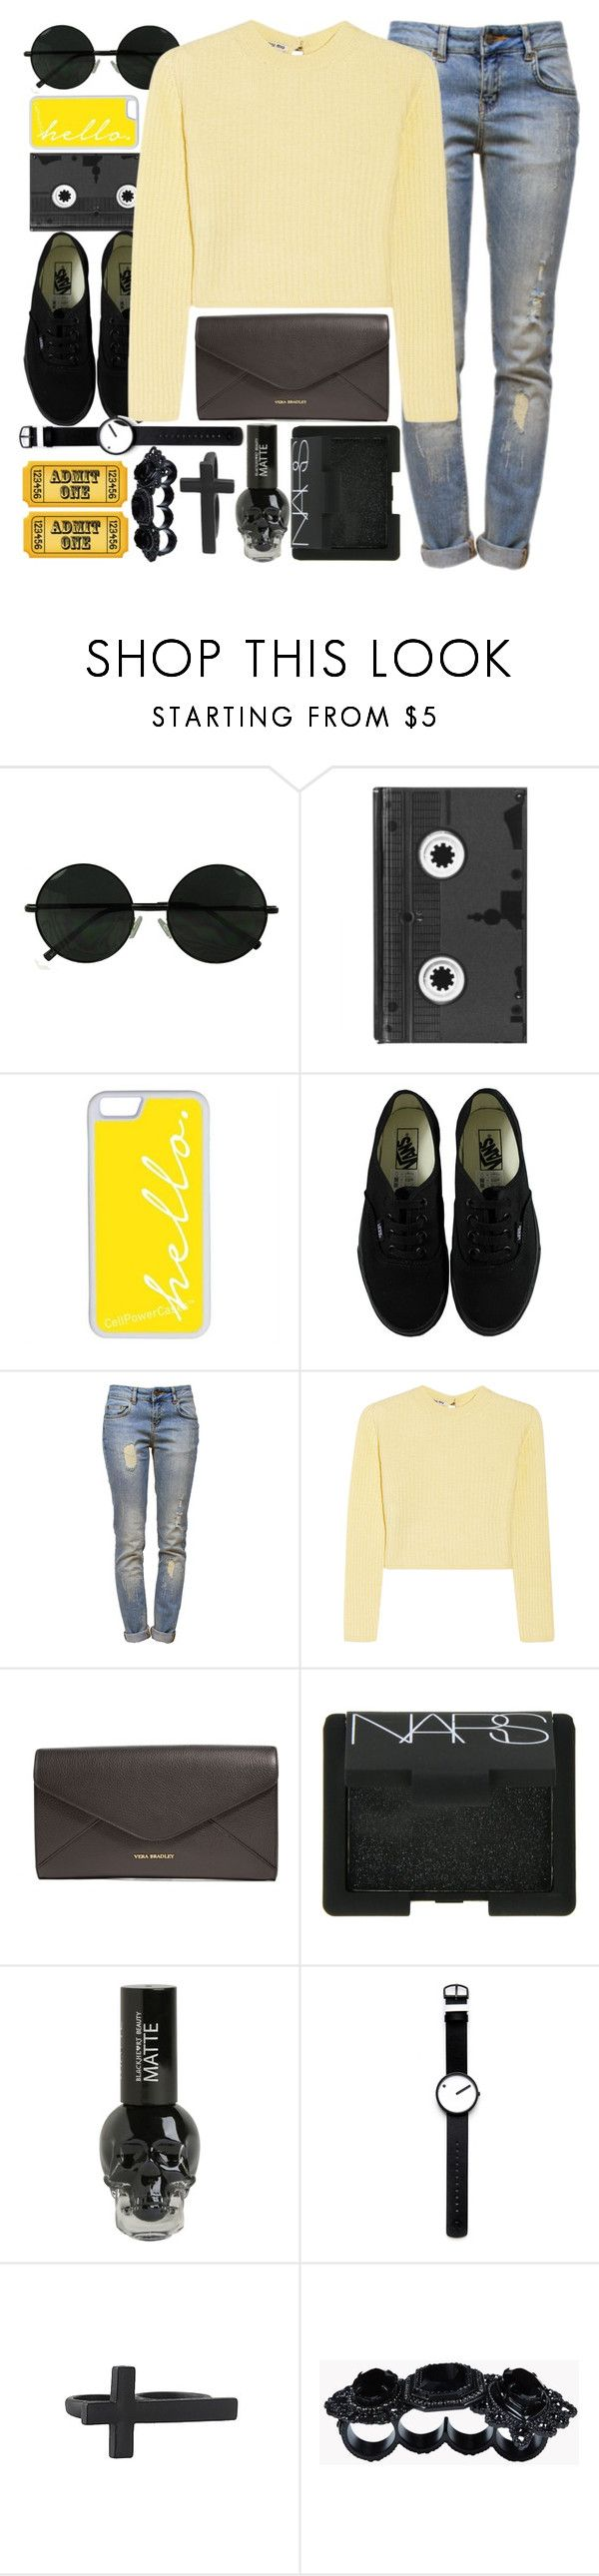 """""""1227"""" by anastaziah2014 ❤ liked on Polyvore featuring Luckies, CellPowerCases, Vans, Anine Bing, Miu Miu, Vera Bradley, NARS Cosmetics, Rosendahl, Forever 21 and Dsquared2"""